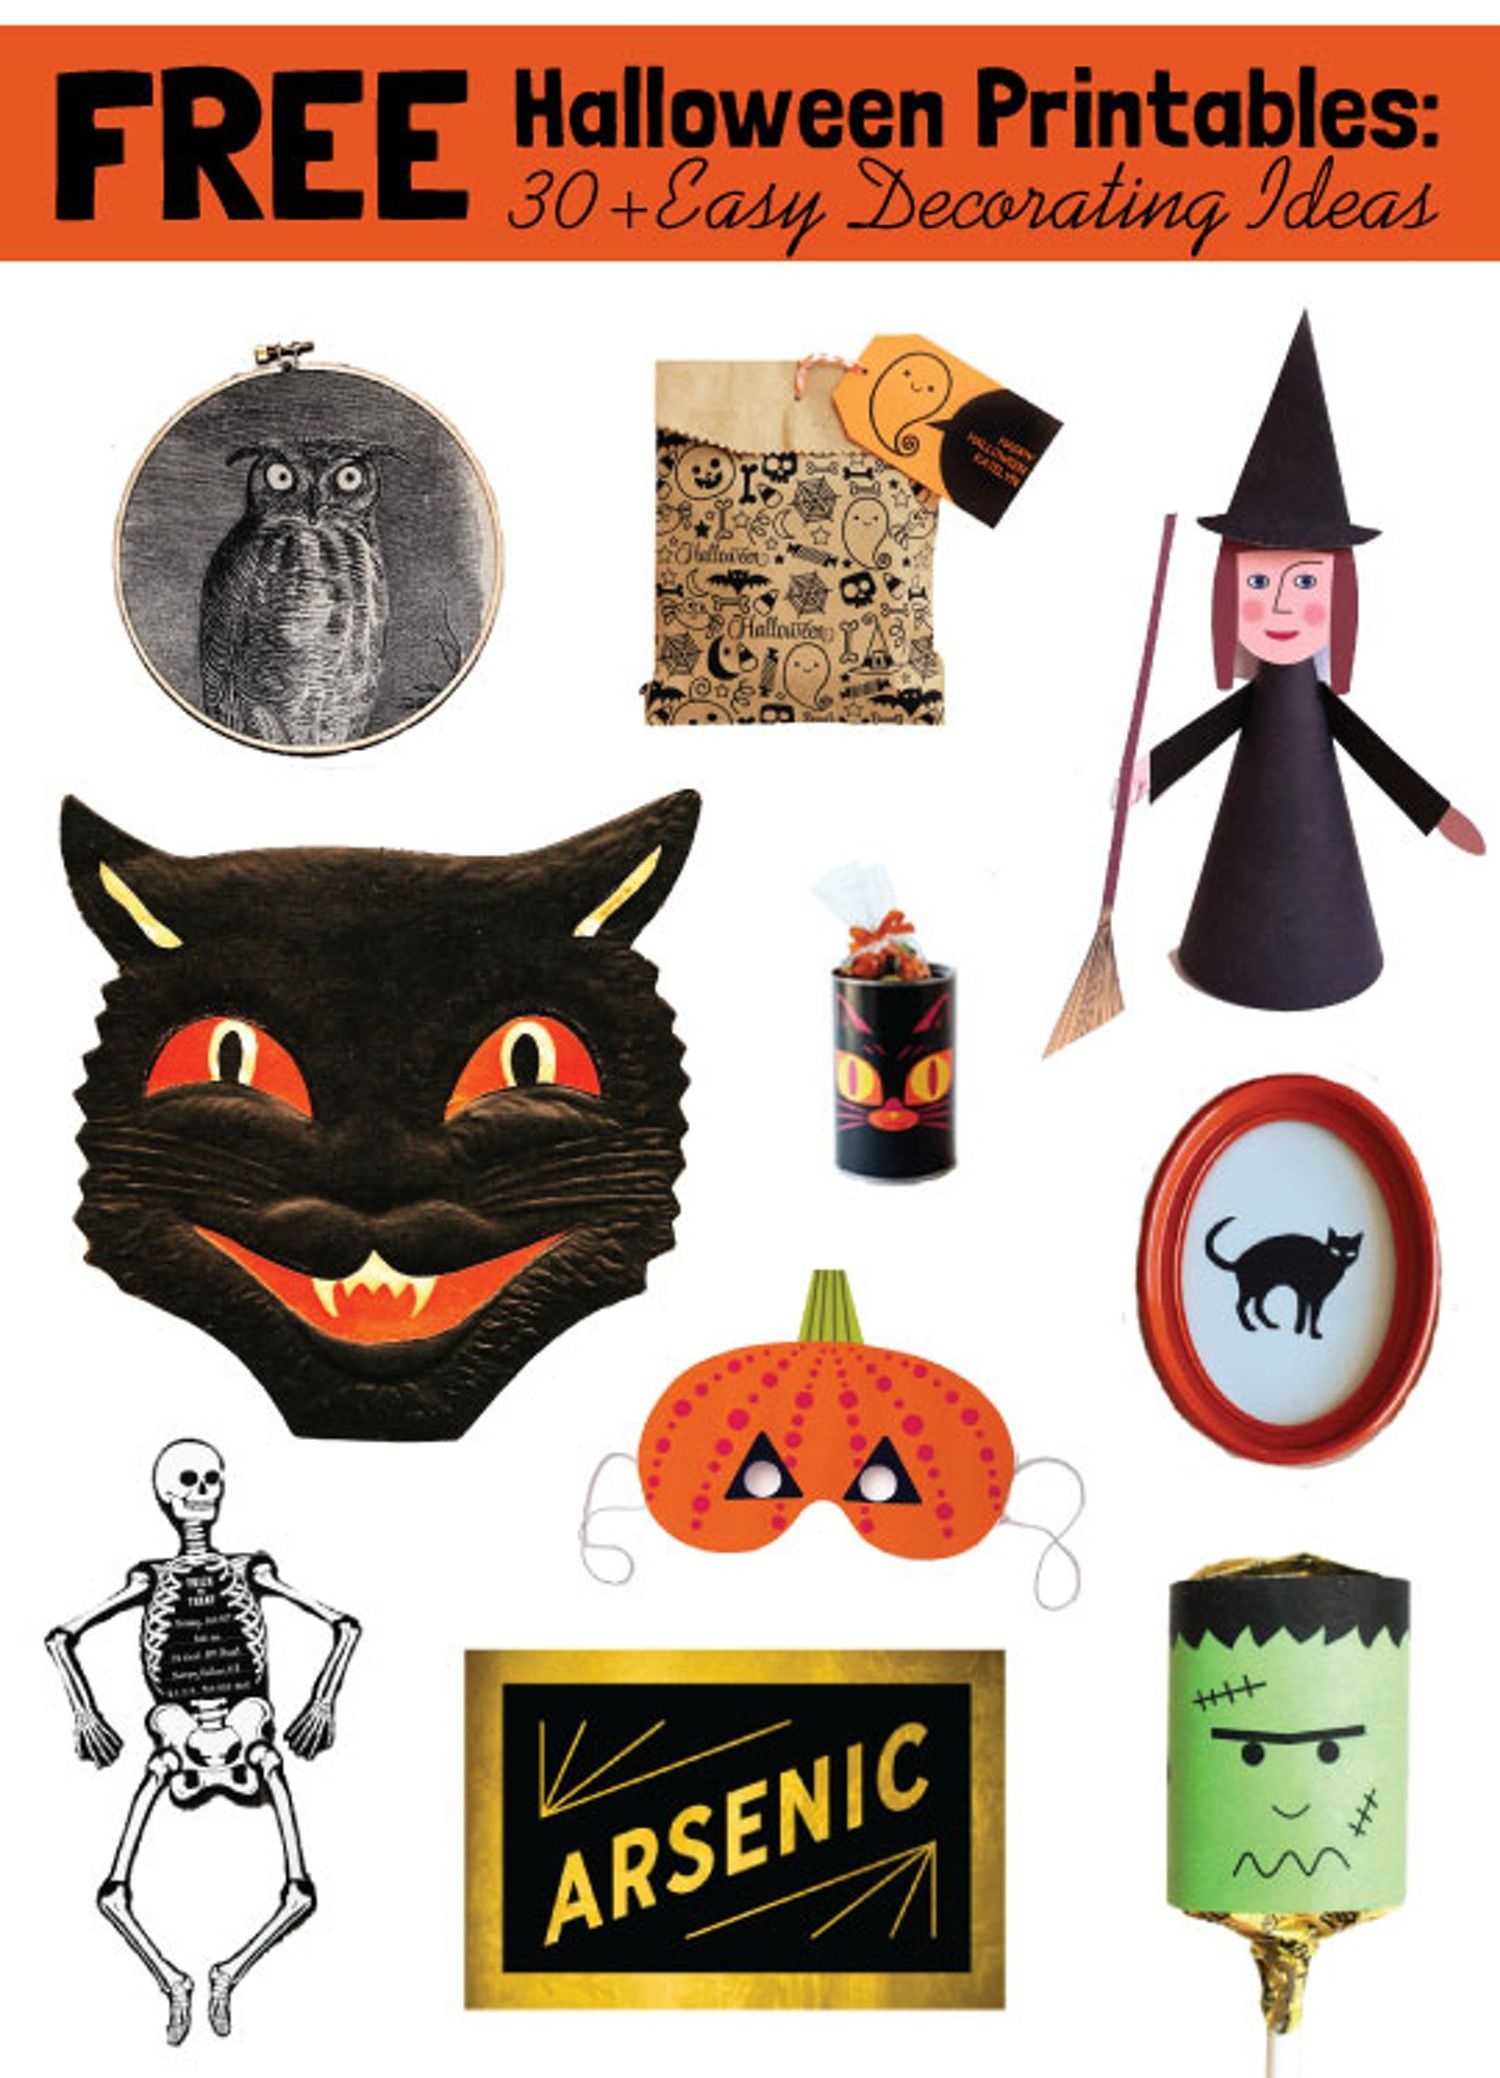 Free Halloween Printables 30 Easy Decoration Ideas from